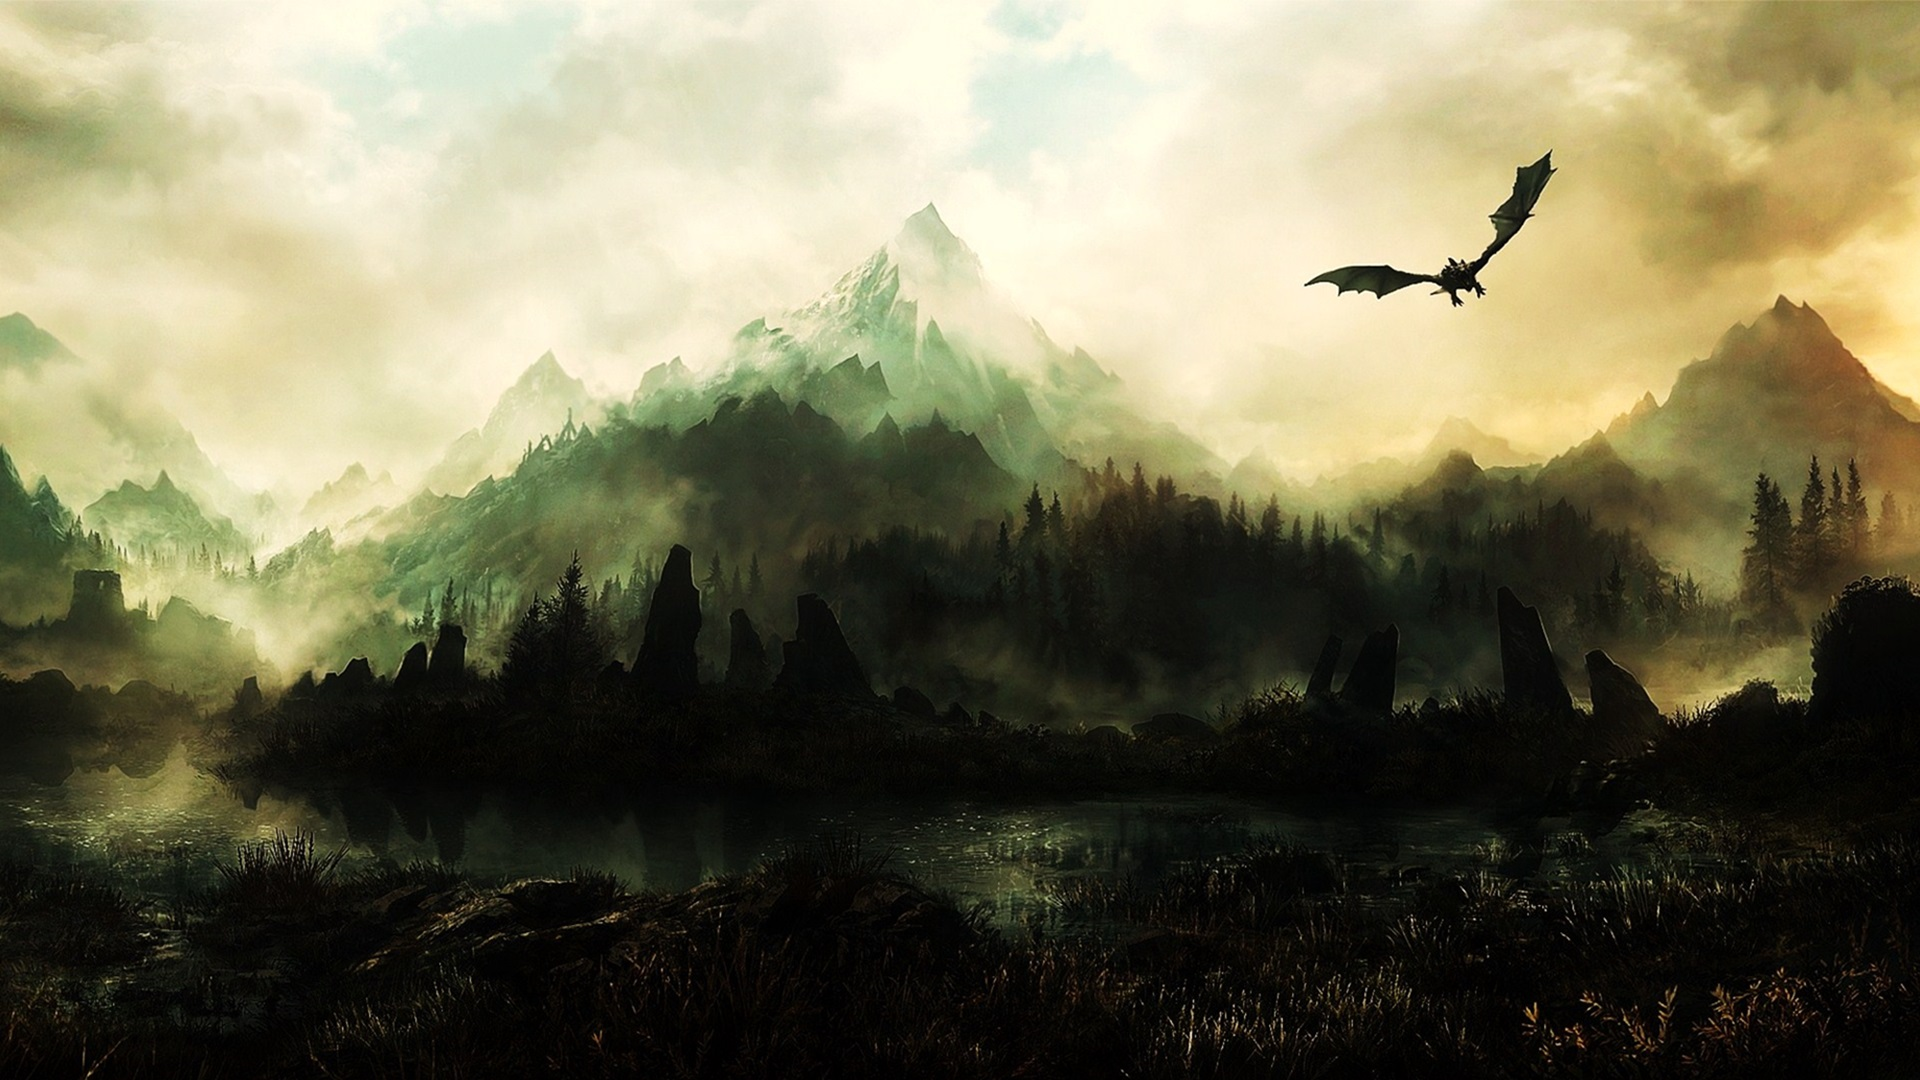 Dragon Flying over Misty Mountains - Elder Scrolls Online Fantasy image